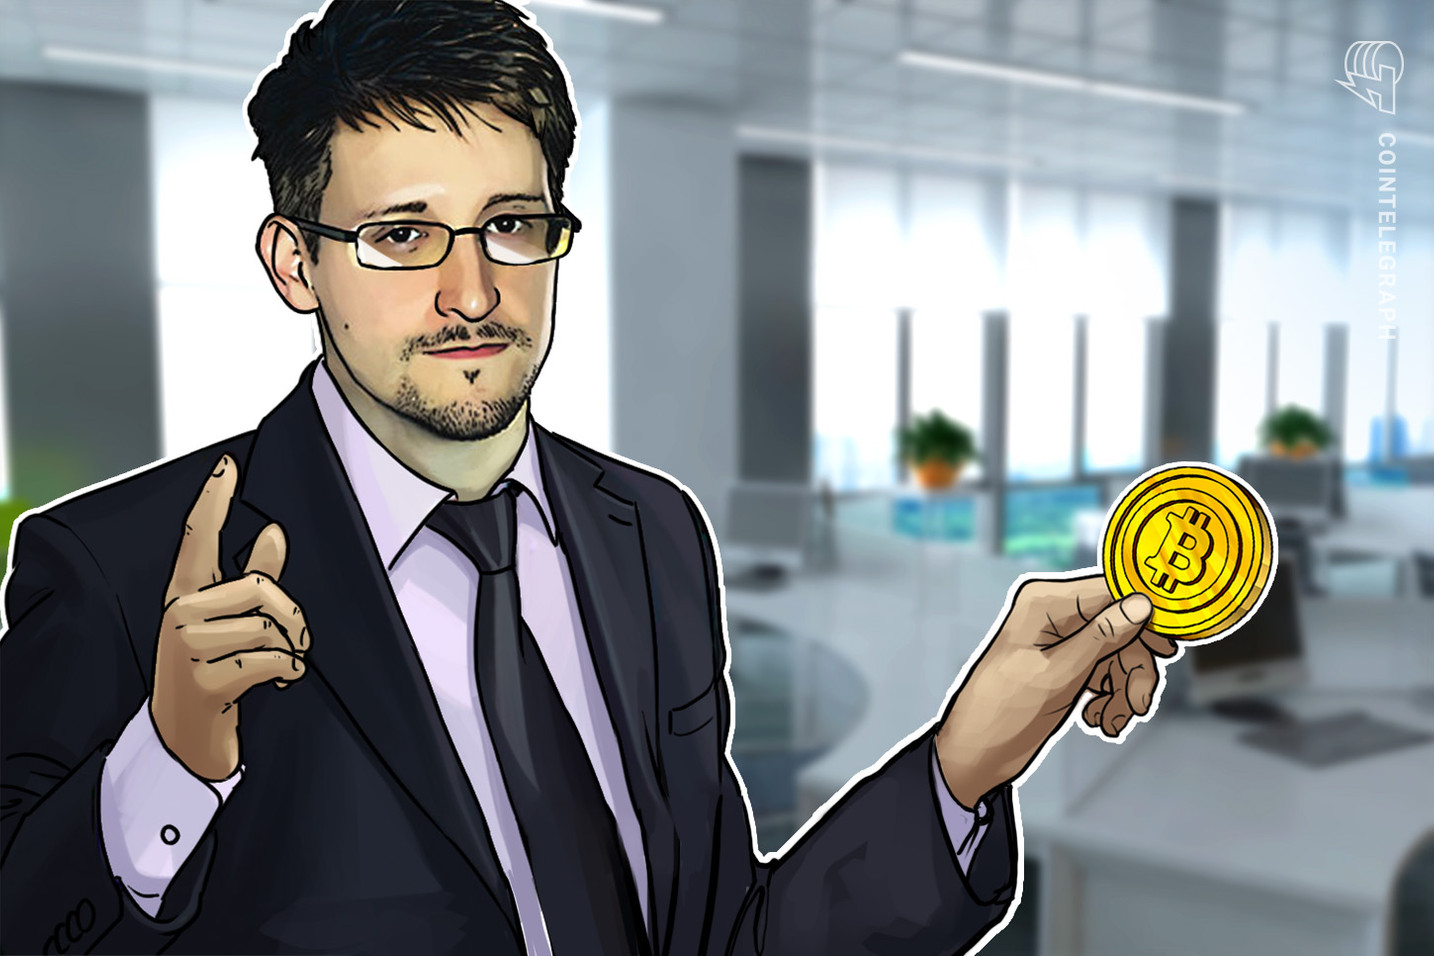 Edward Snowden Used Bitcoin to Pay for Servers Used in NSA Leak